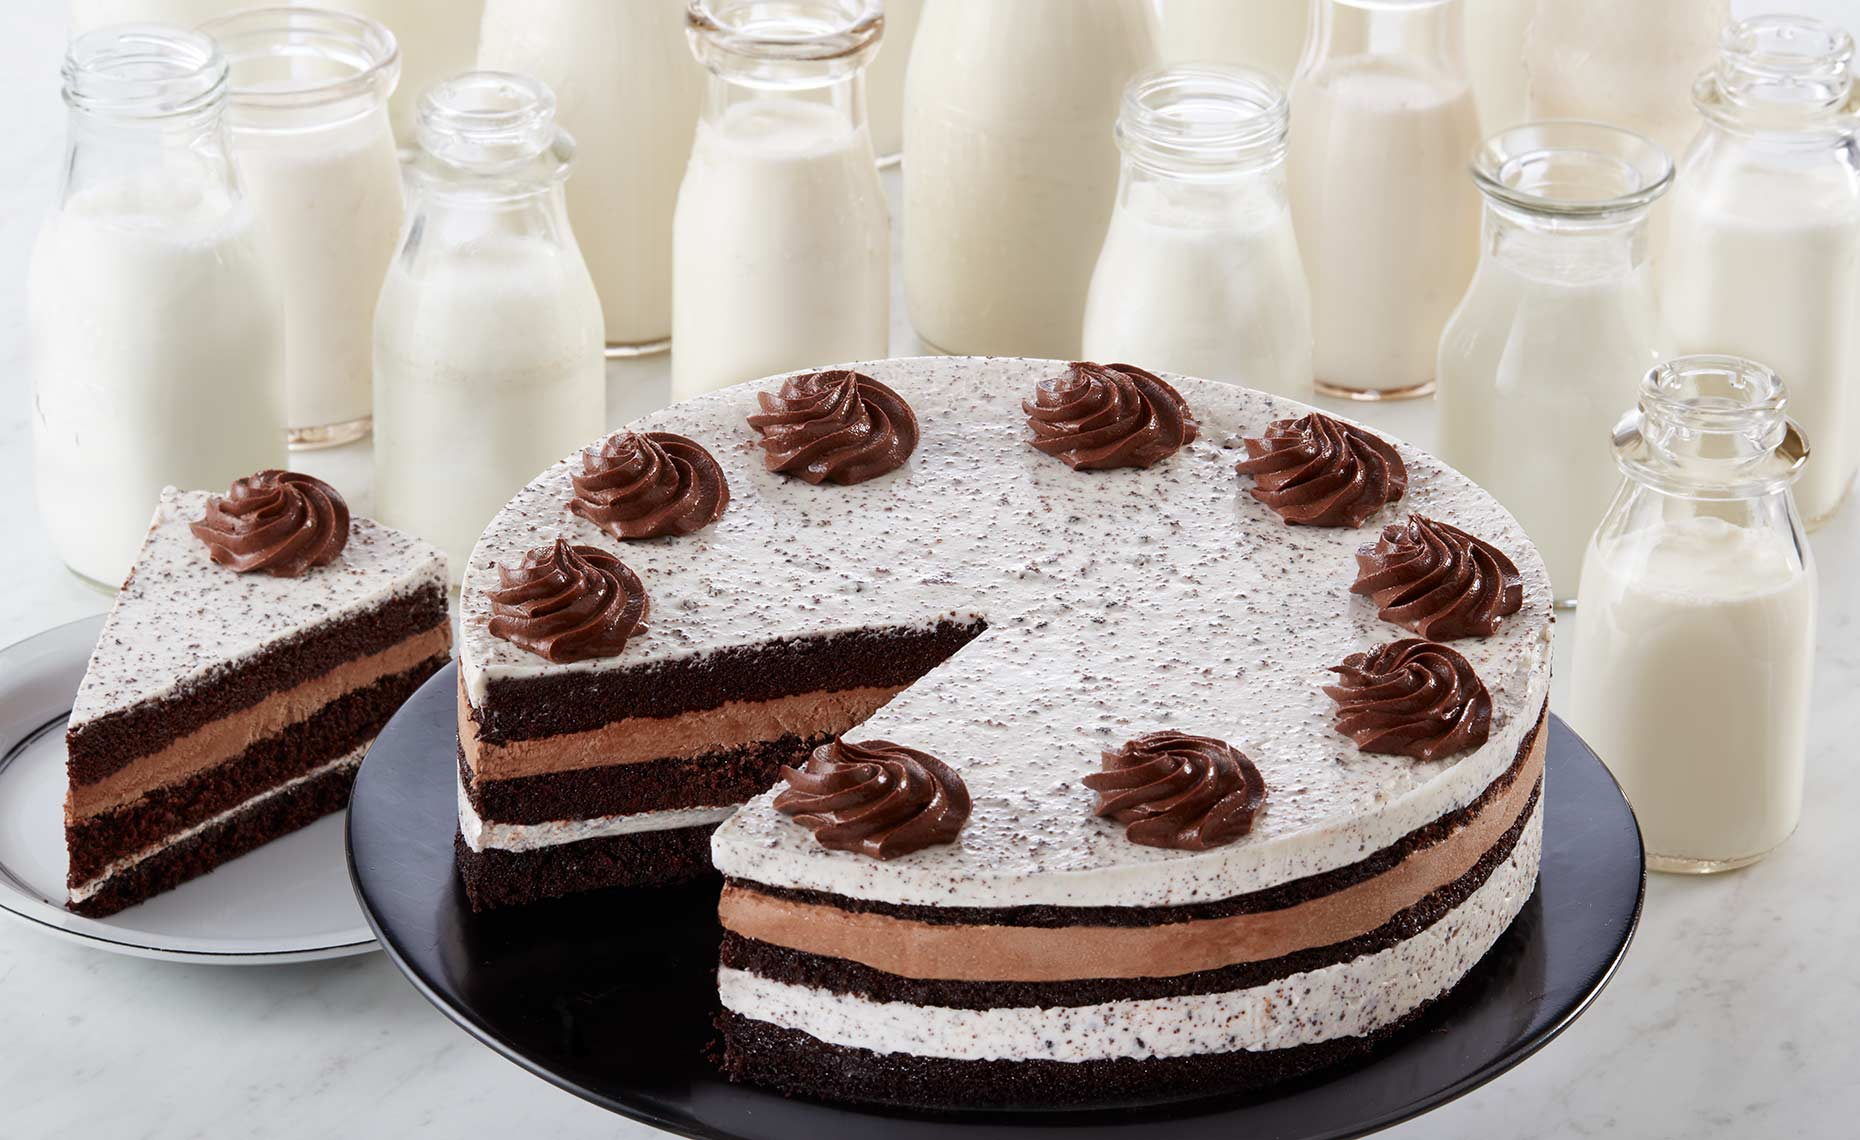 dessert-sweets-photographers-cookies-cream-cake-43